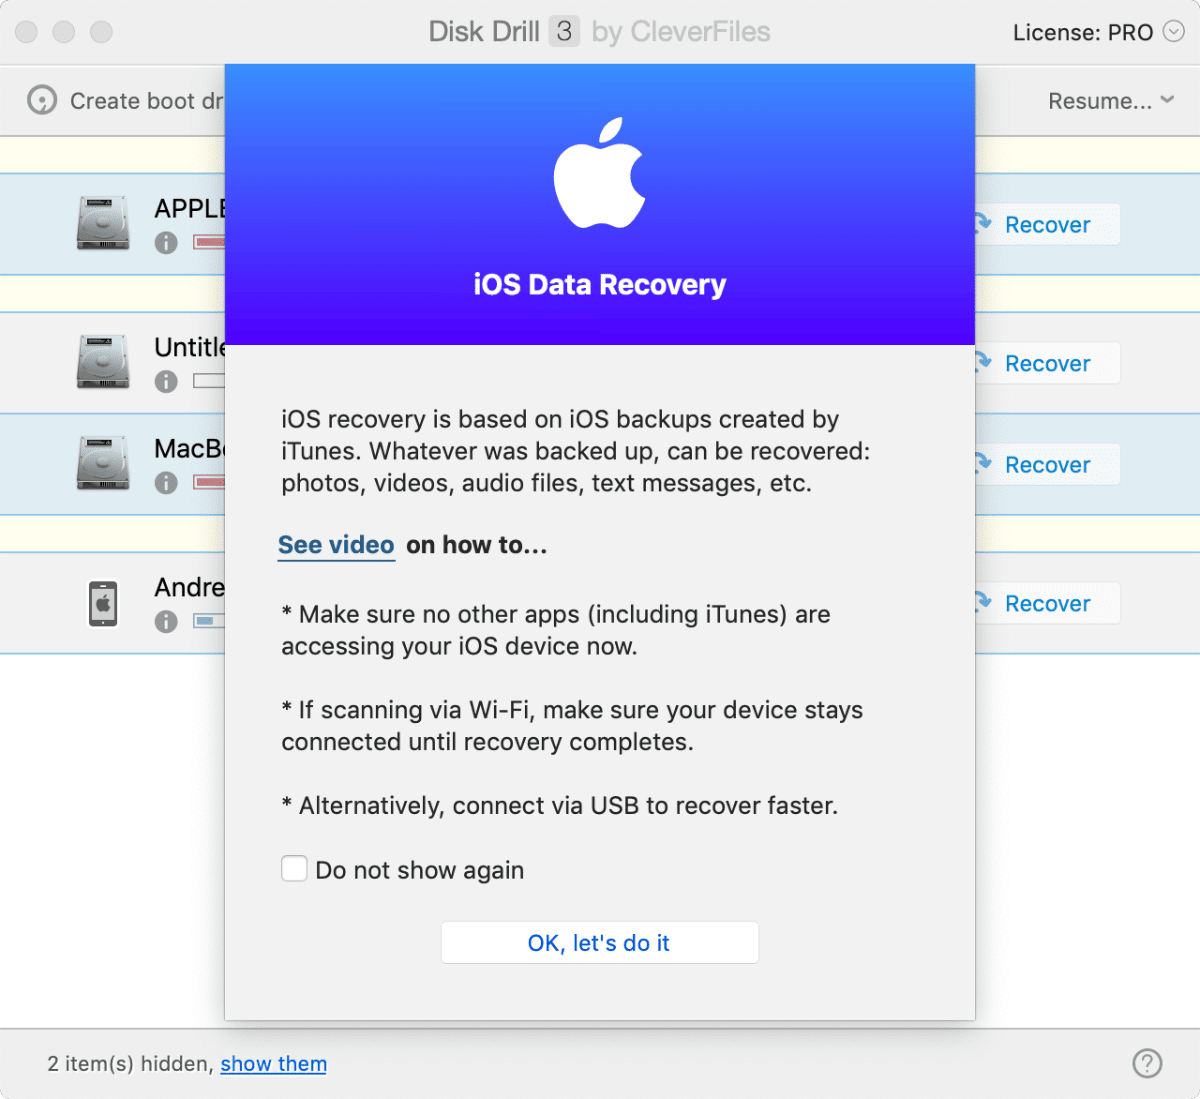 Disk Drill 3 can recover iOS data. Screenshot of the process.